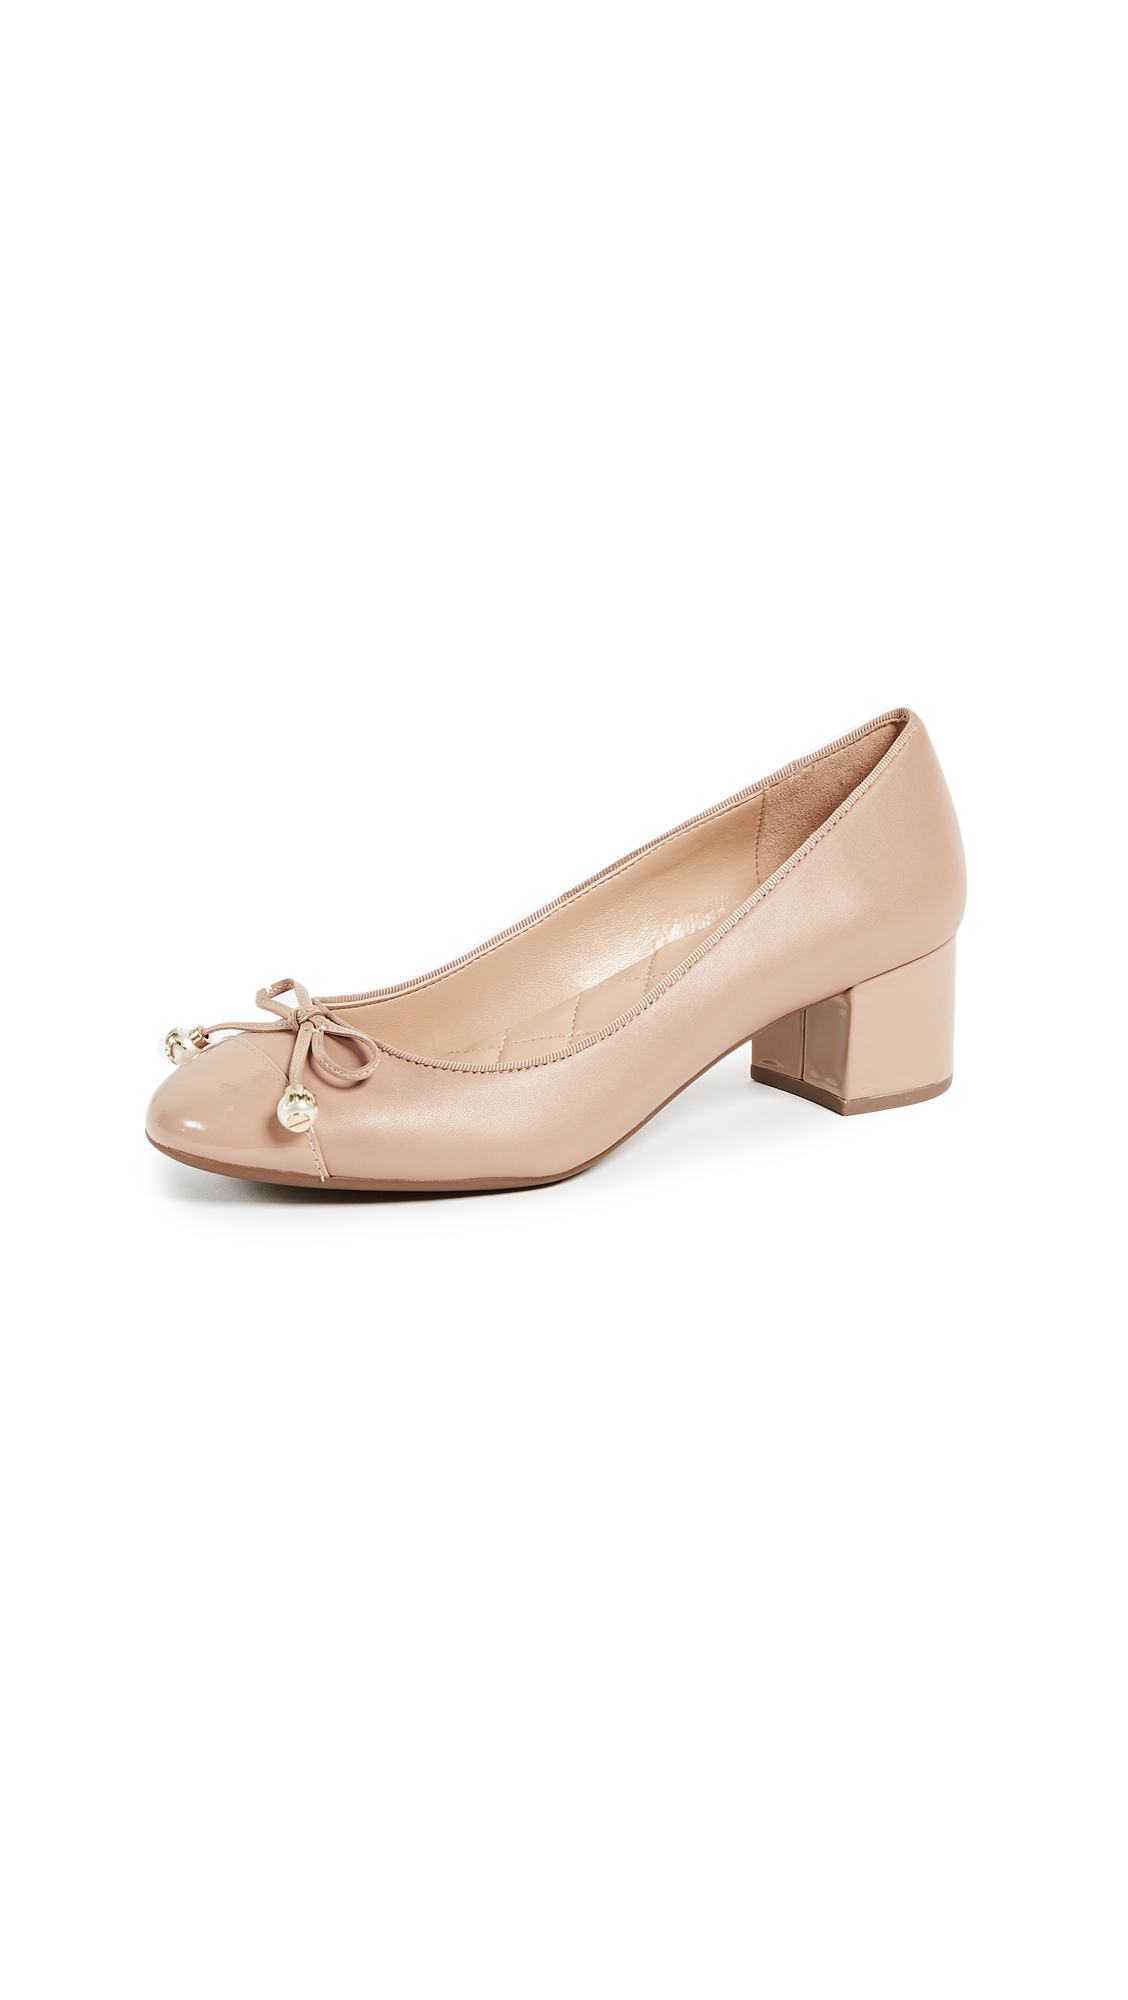 MICHAEL Michael Kors Gia Mid Pumps - Toffee